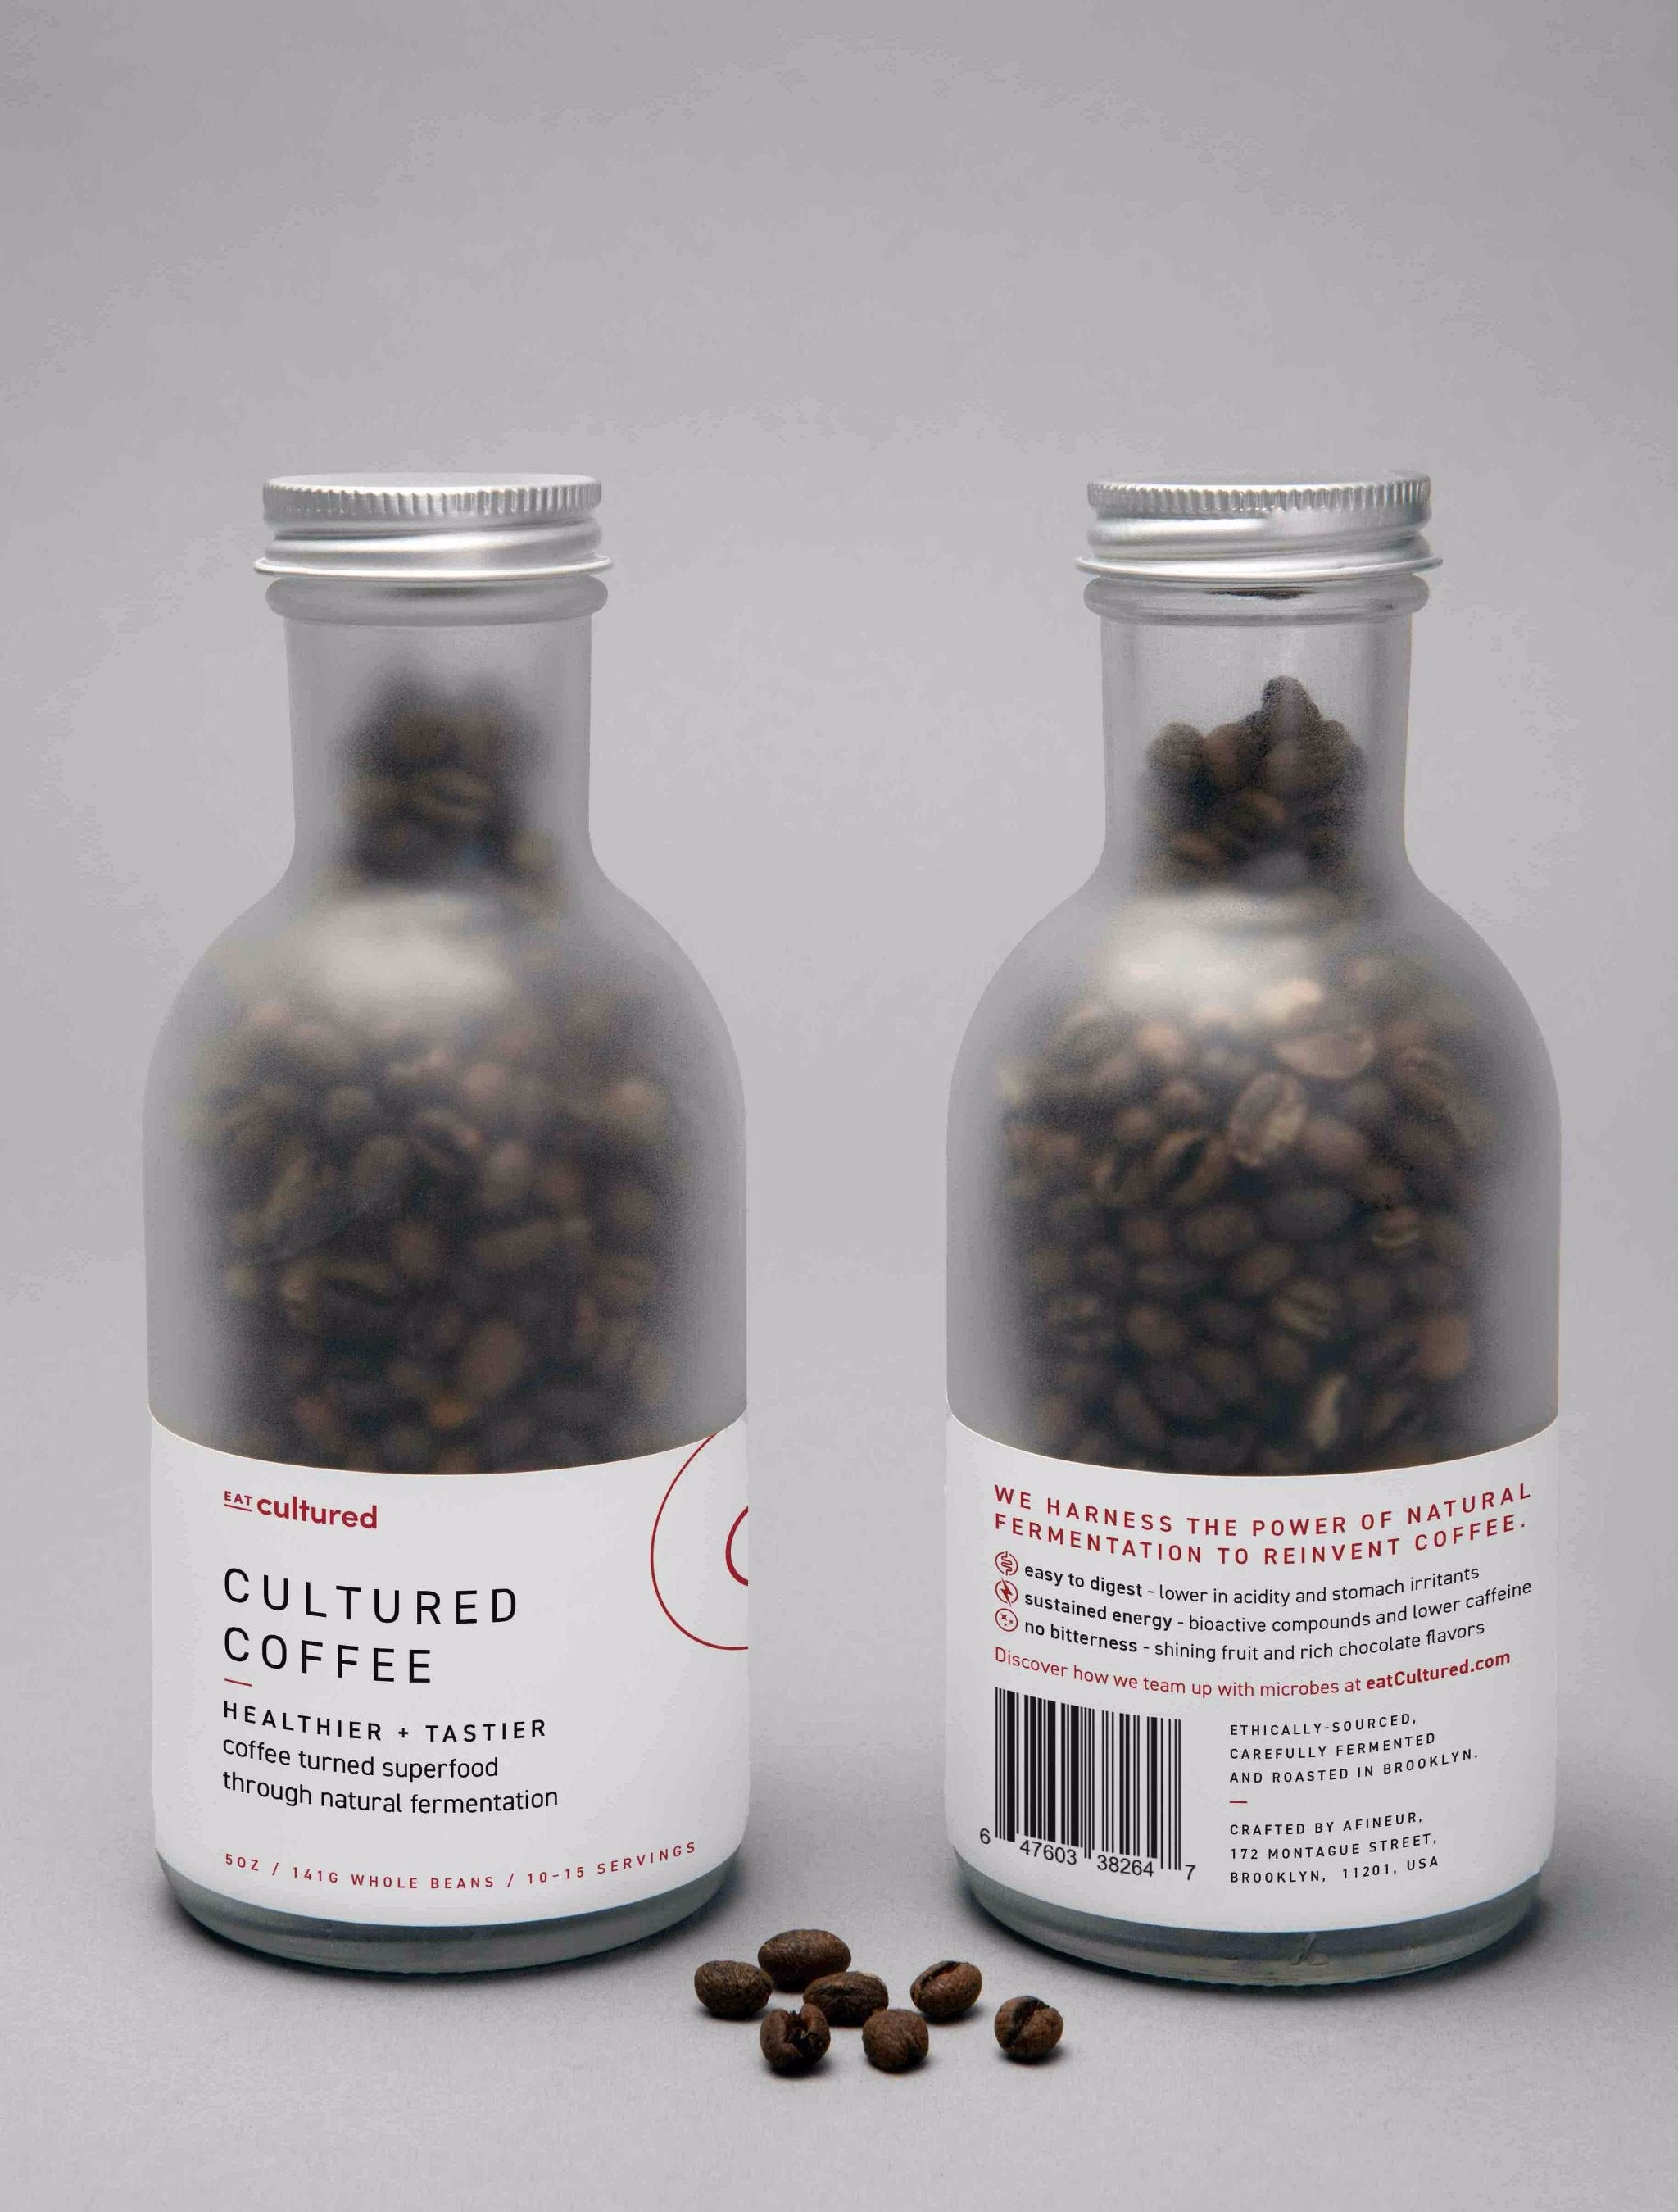 Cultured Coffee - Whole Beans 5 oz bags